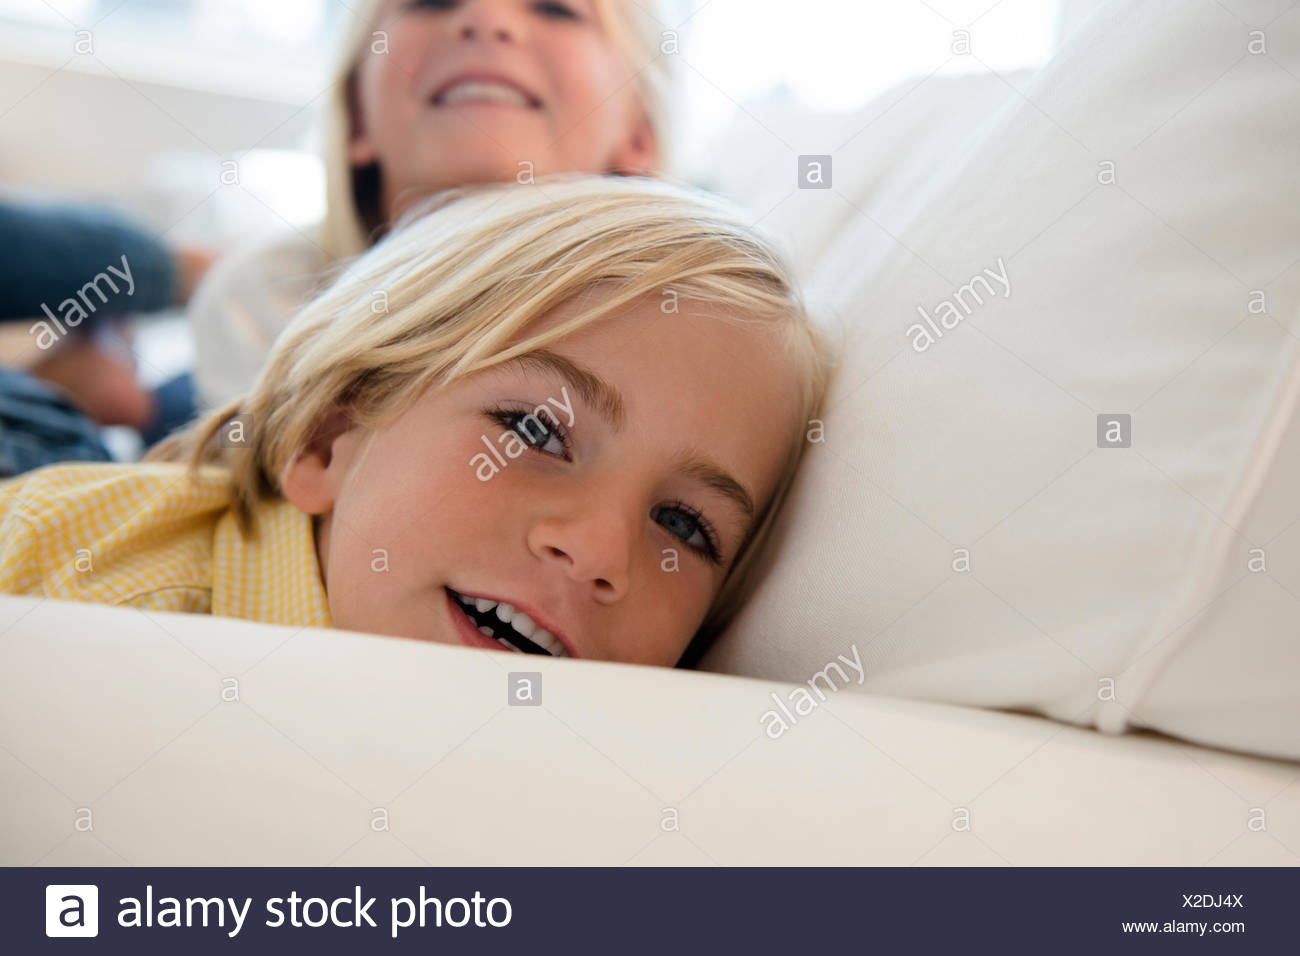 Boy (4-5) and girl (6-7) looking at camera - Stock Image